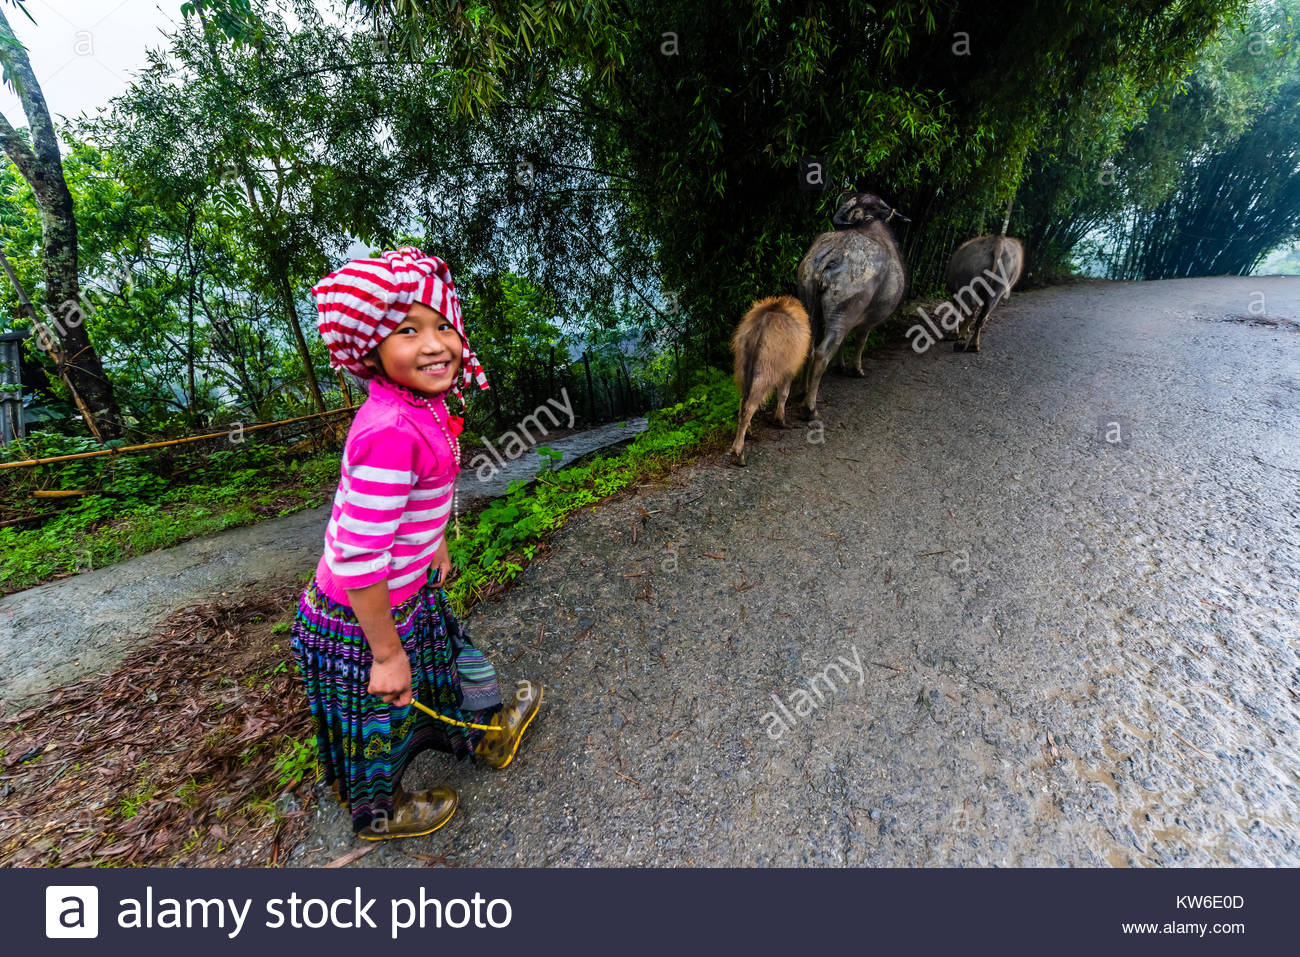 A Flower Hmong (hill tribe) girl bringing the livestock home for the day in the Muong Hoa Valley, near Sapa, northern - Stock Image